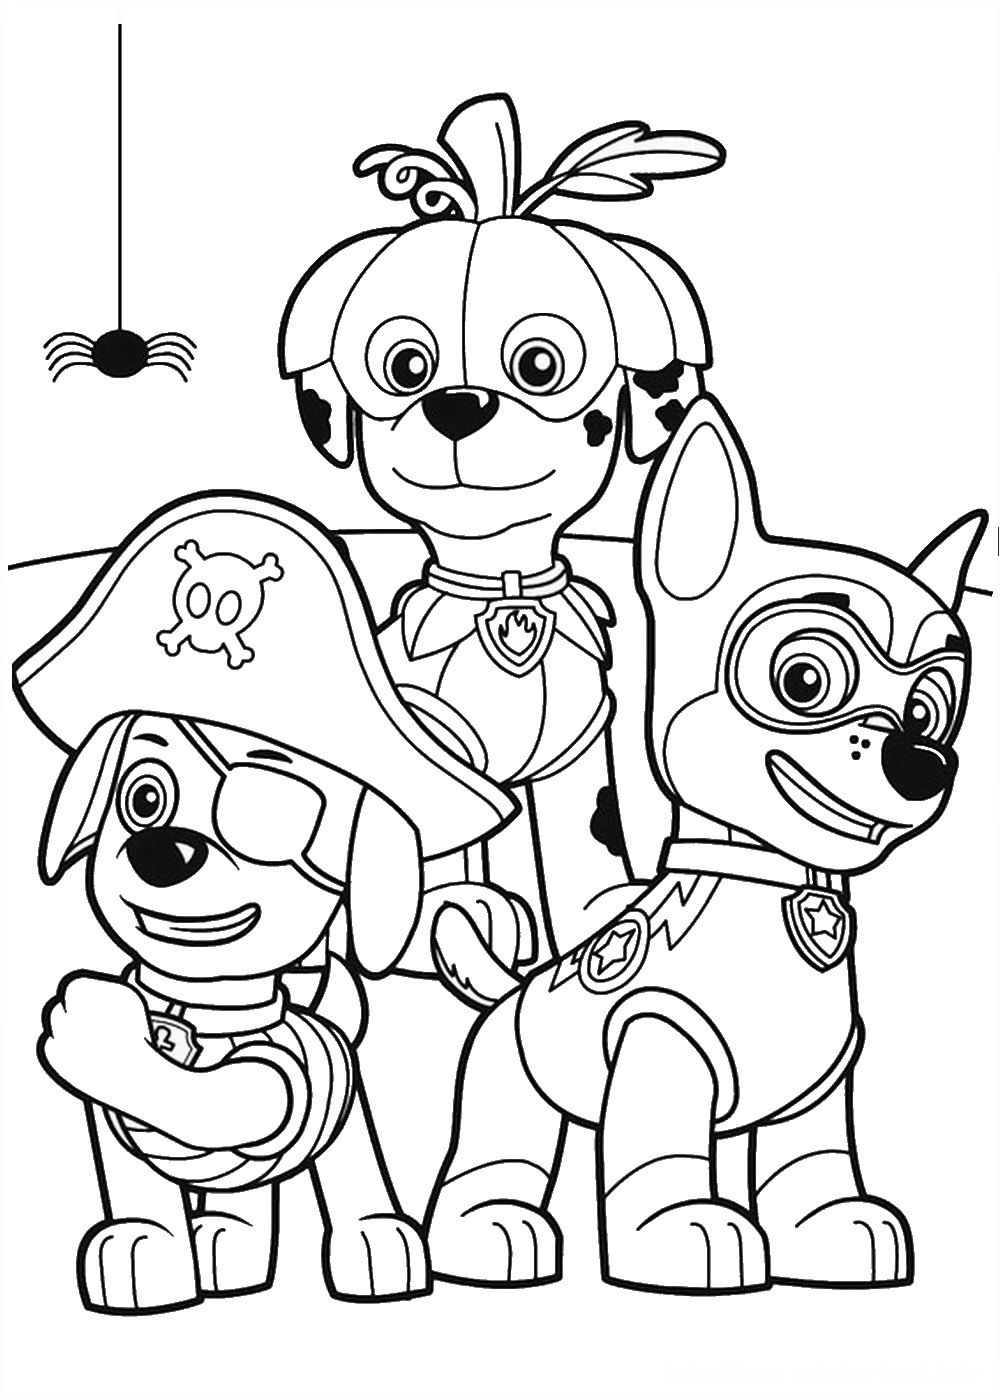 Coloring Pages Nickelodeon Designs Trend